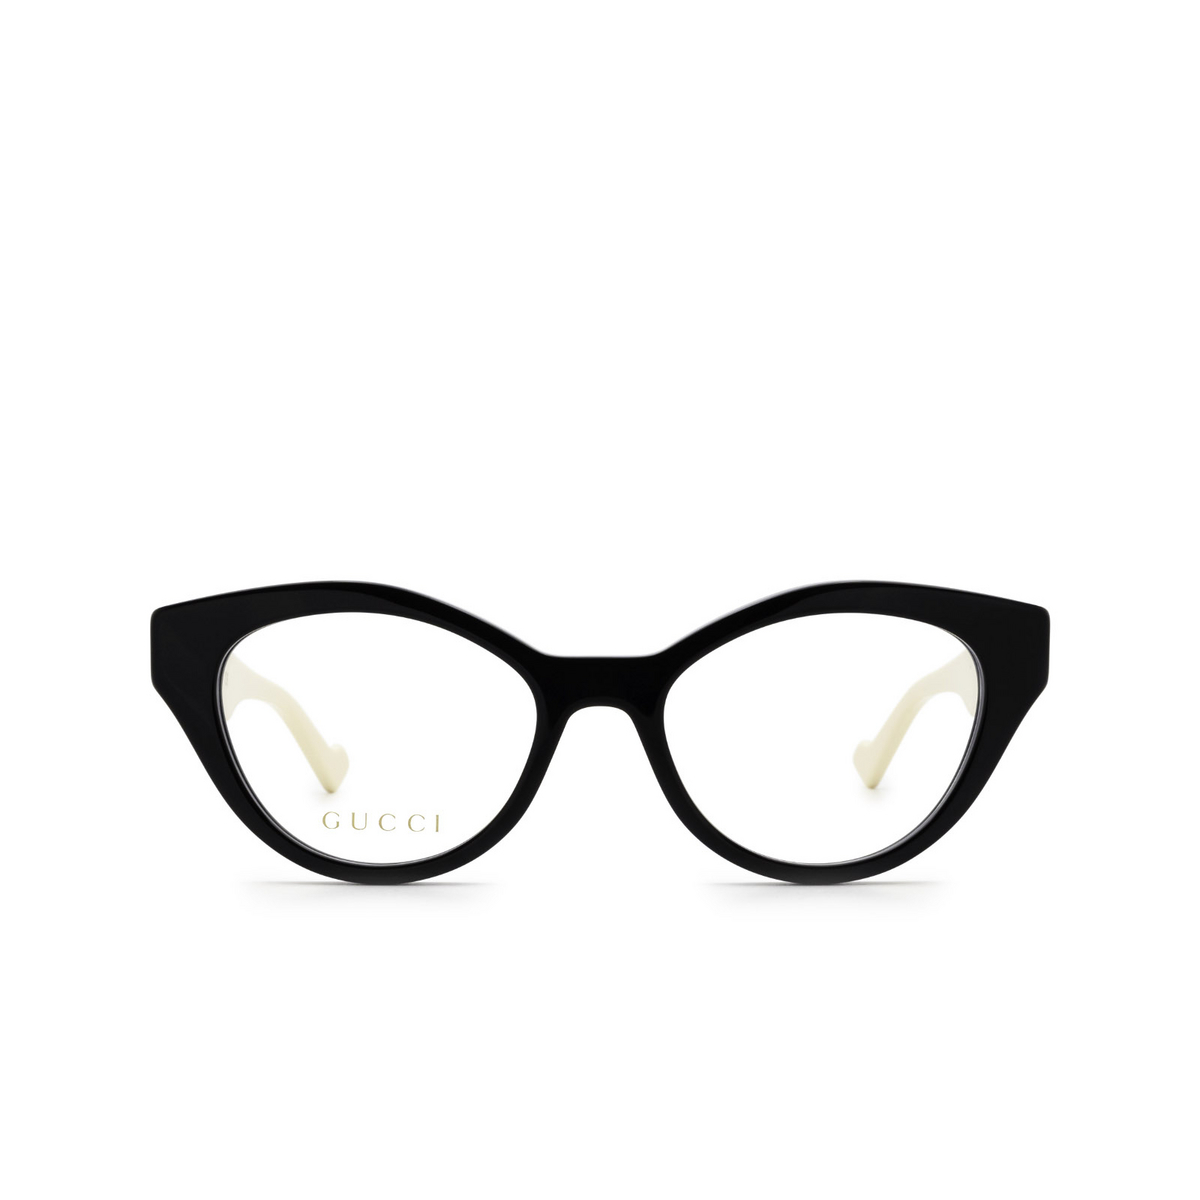 Gucci® Cat-eye Eyeglasses: GG0959O color Black & Ivory 002 - front view.